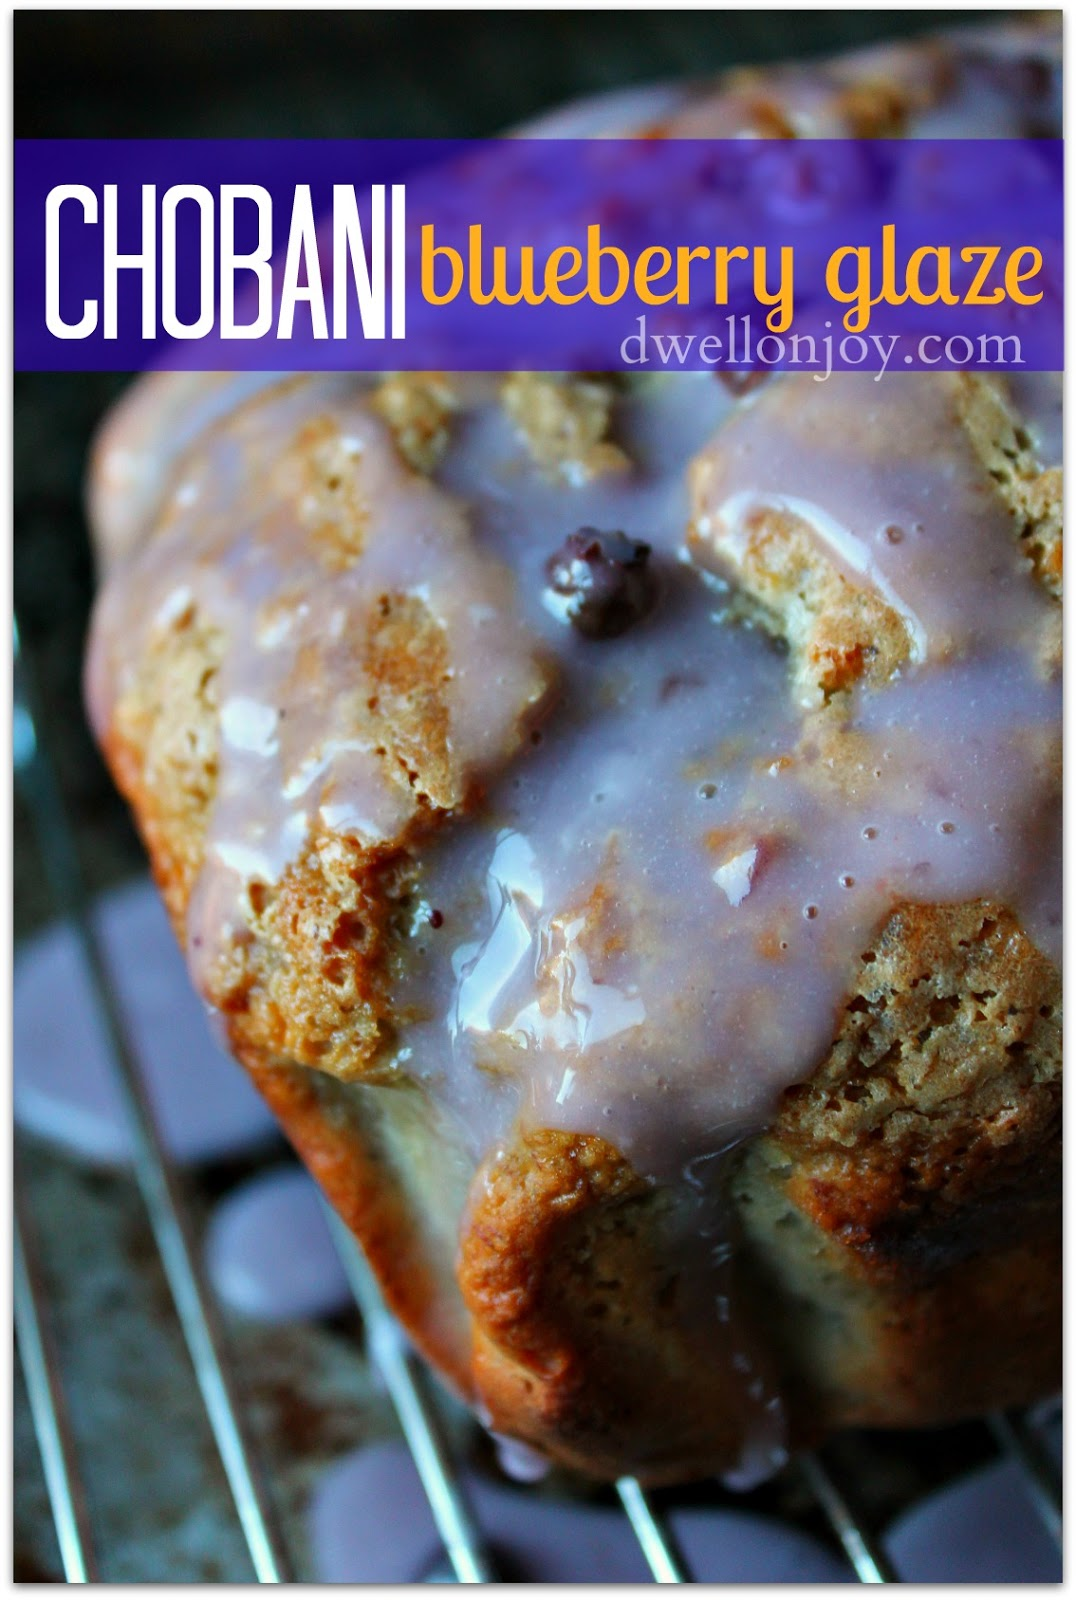 banana glaze essay Food and travel blog where we share favorite recipes, mixed in with vacation destinations and experiences by always taking the road less traveled.